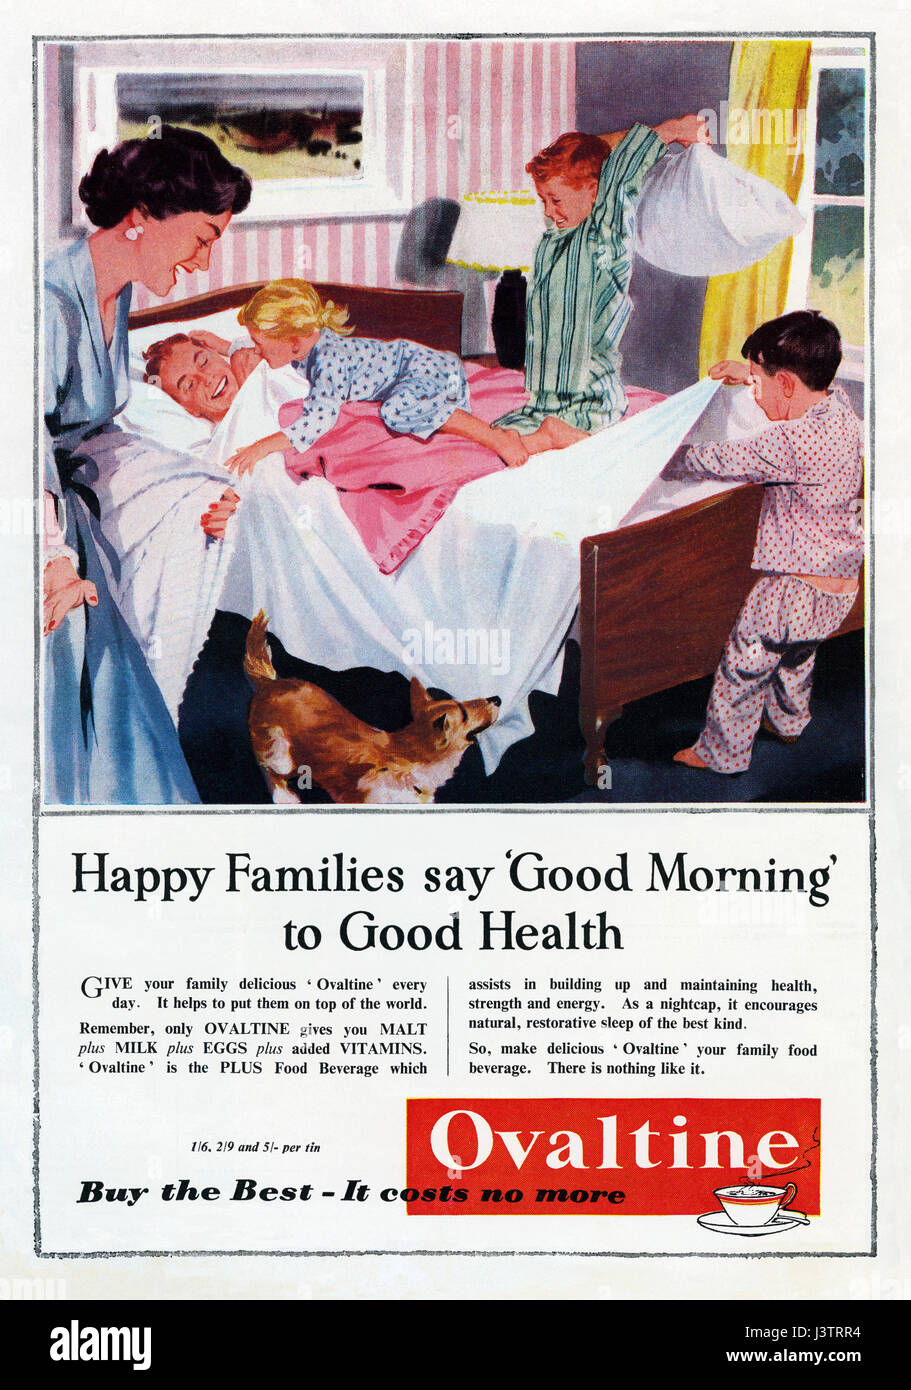 A 1950s advert for Ovaltine malt extract and milk drink. The advert appeared in a magazine in 1959 - Stock Image